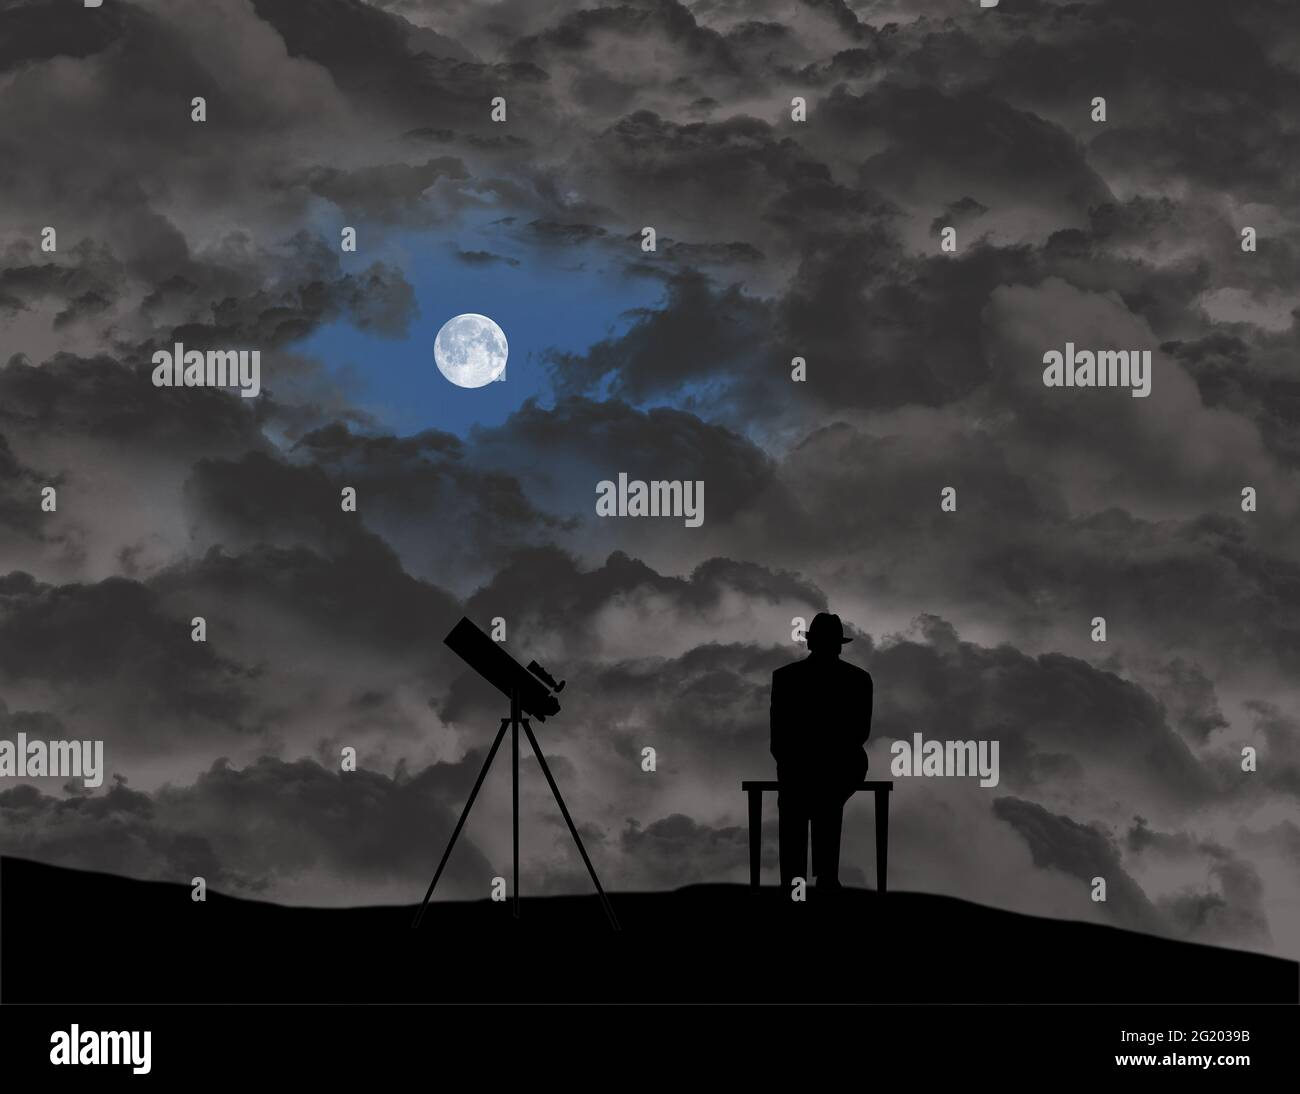 An amateur astronomer sits and waits for an opening in the clouds so he can view the sky with his telescope in this 3-d illustration. Stock Photo